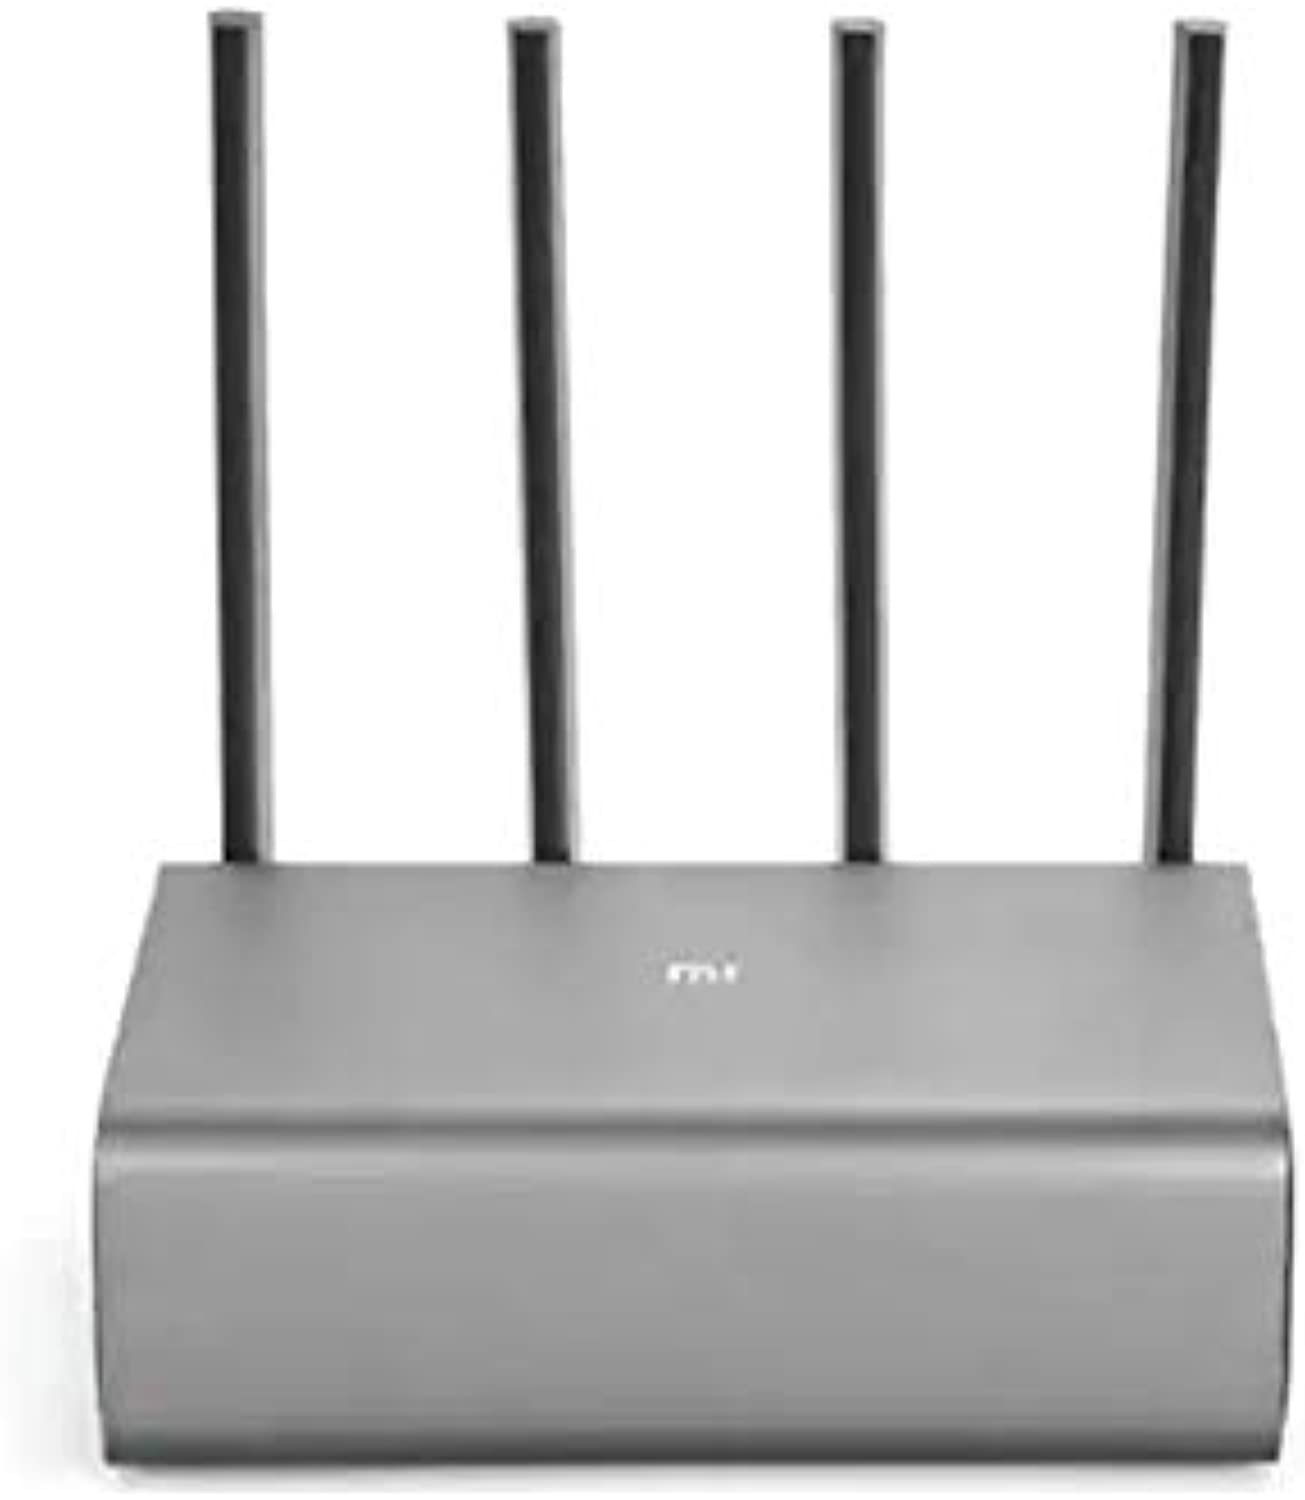 WEIHAN Original For Xiaomi Mi R3P 2600Mbps Wireless Router Multi-functional HD Router